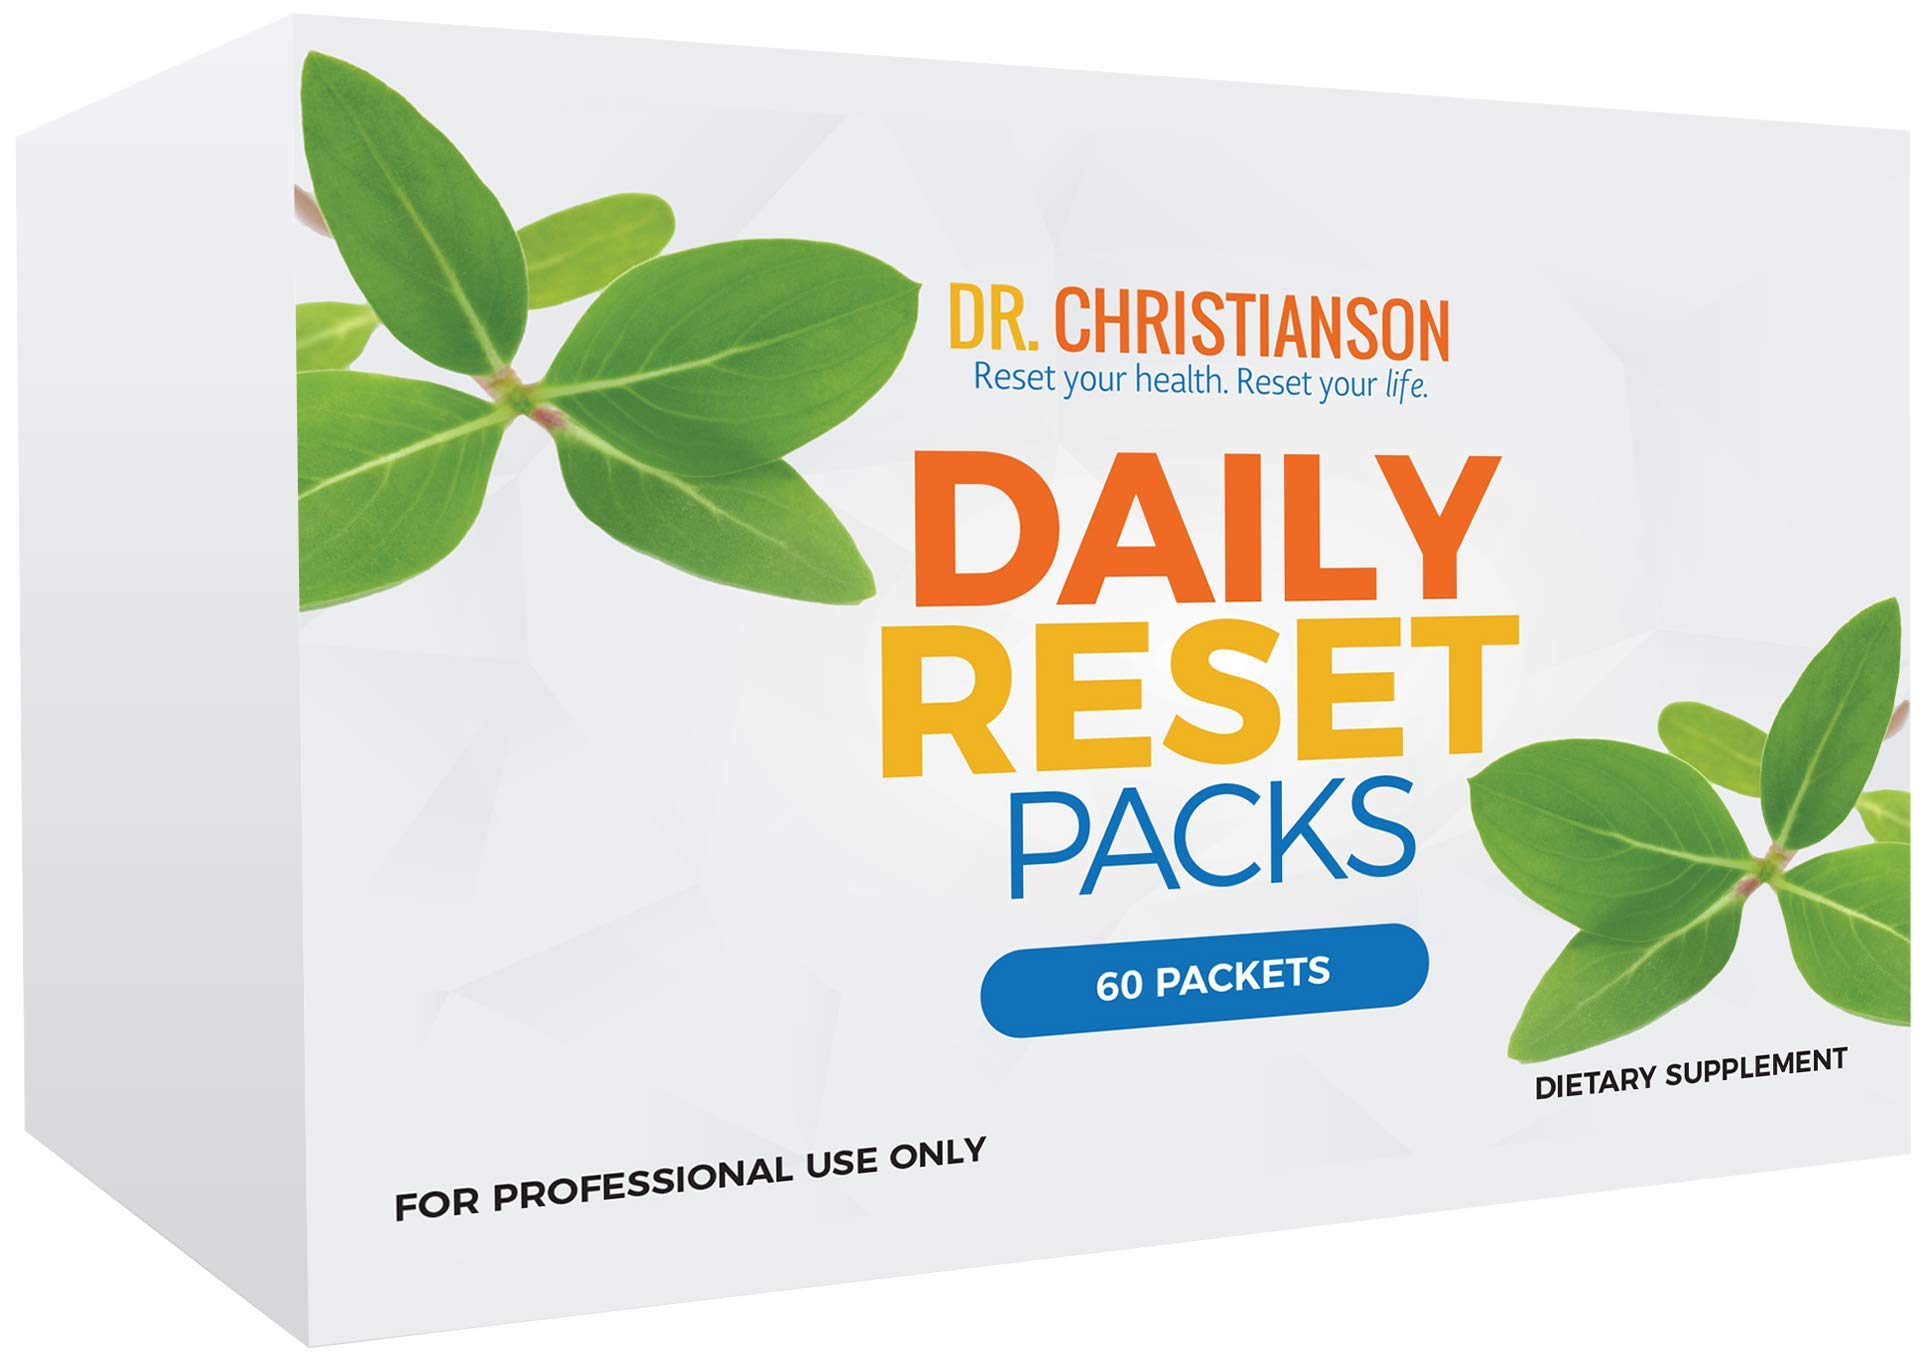 Dr. Christianson's Daily Reset Pack - Multi Vitamin, Fish Oil, Calcium, Vitamin D - 60 Individual Daily Packs by Dr Christianson